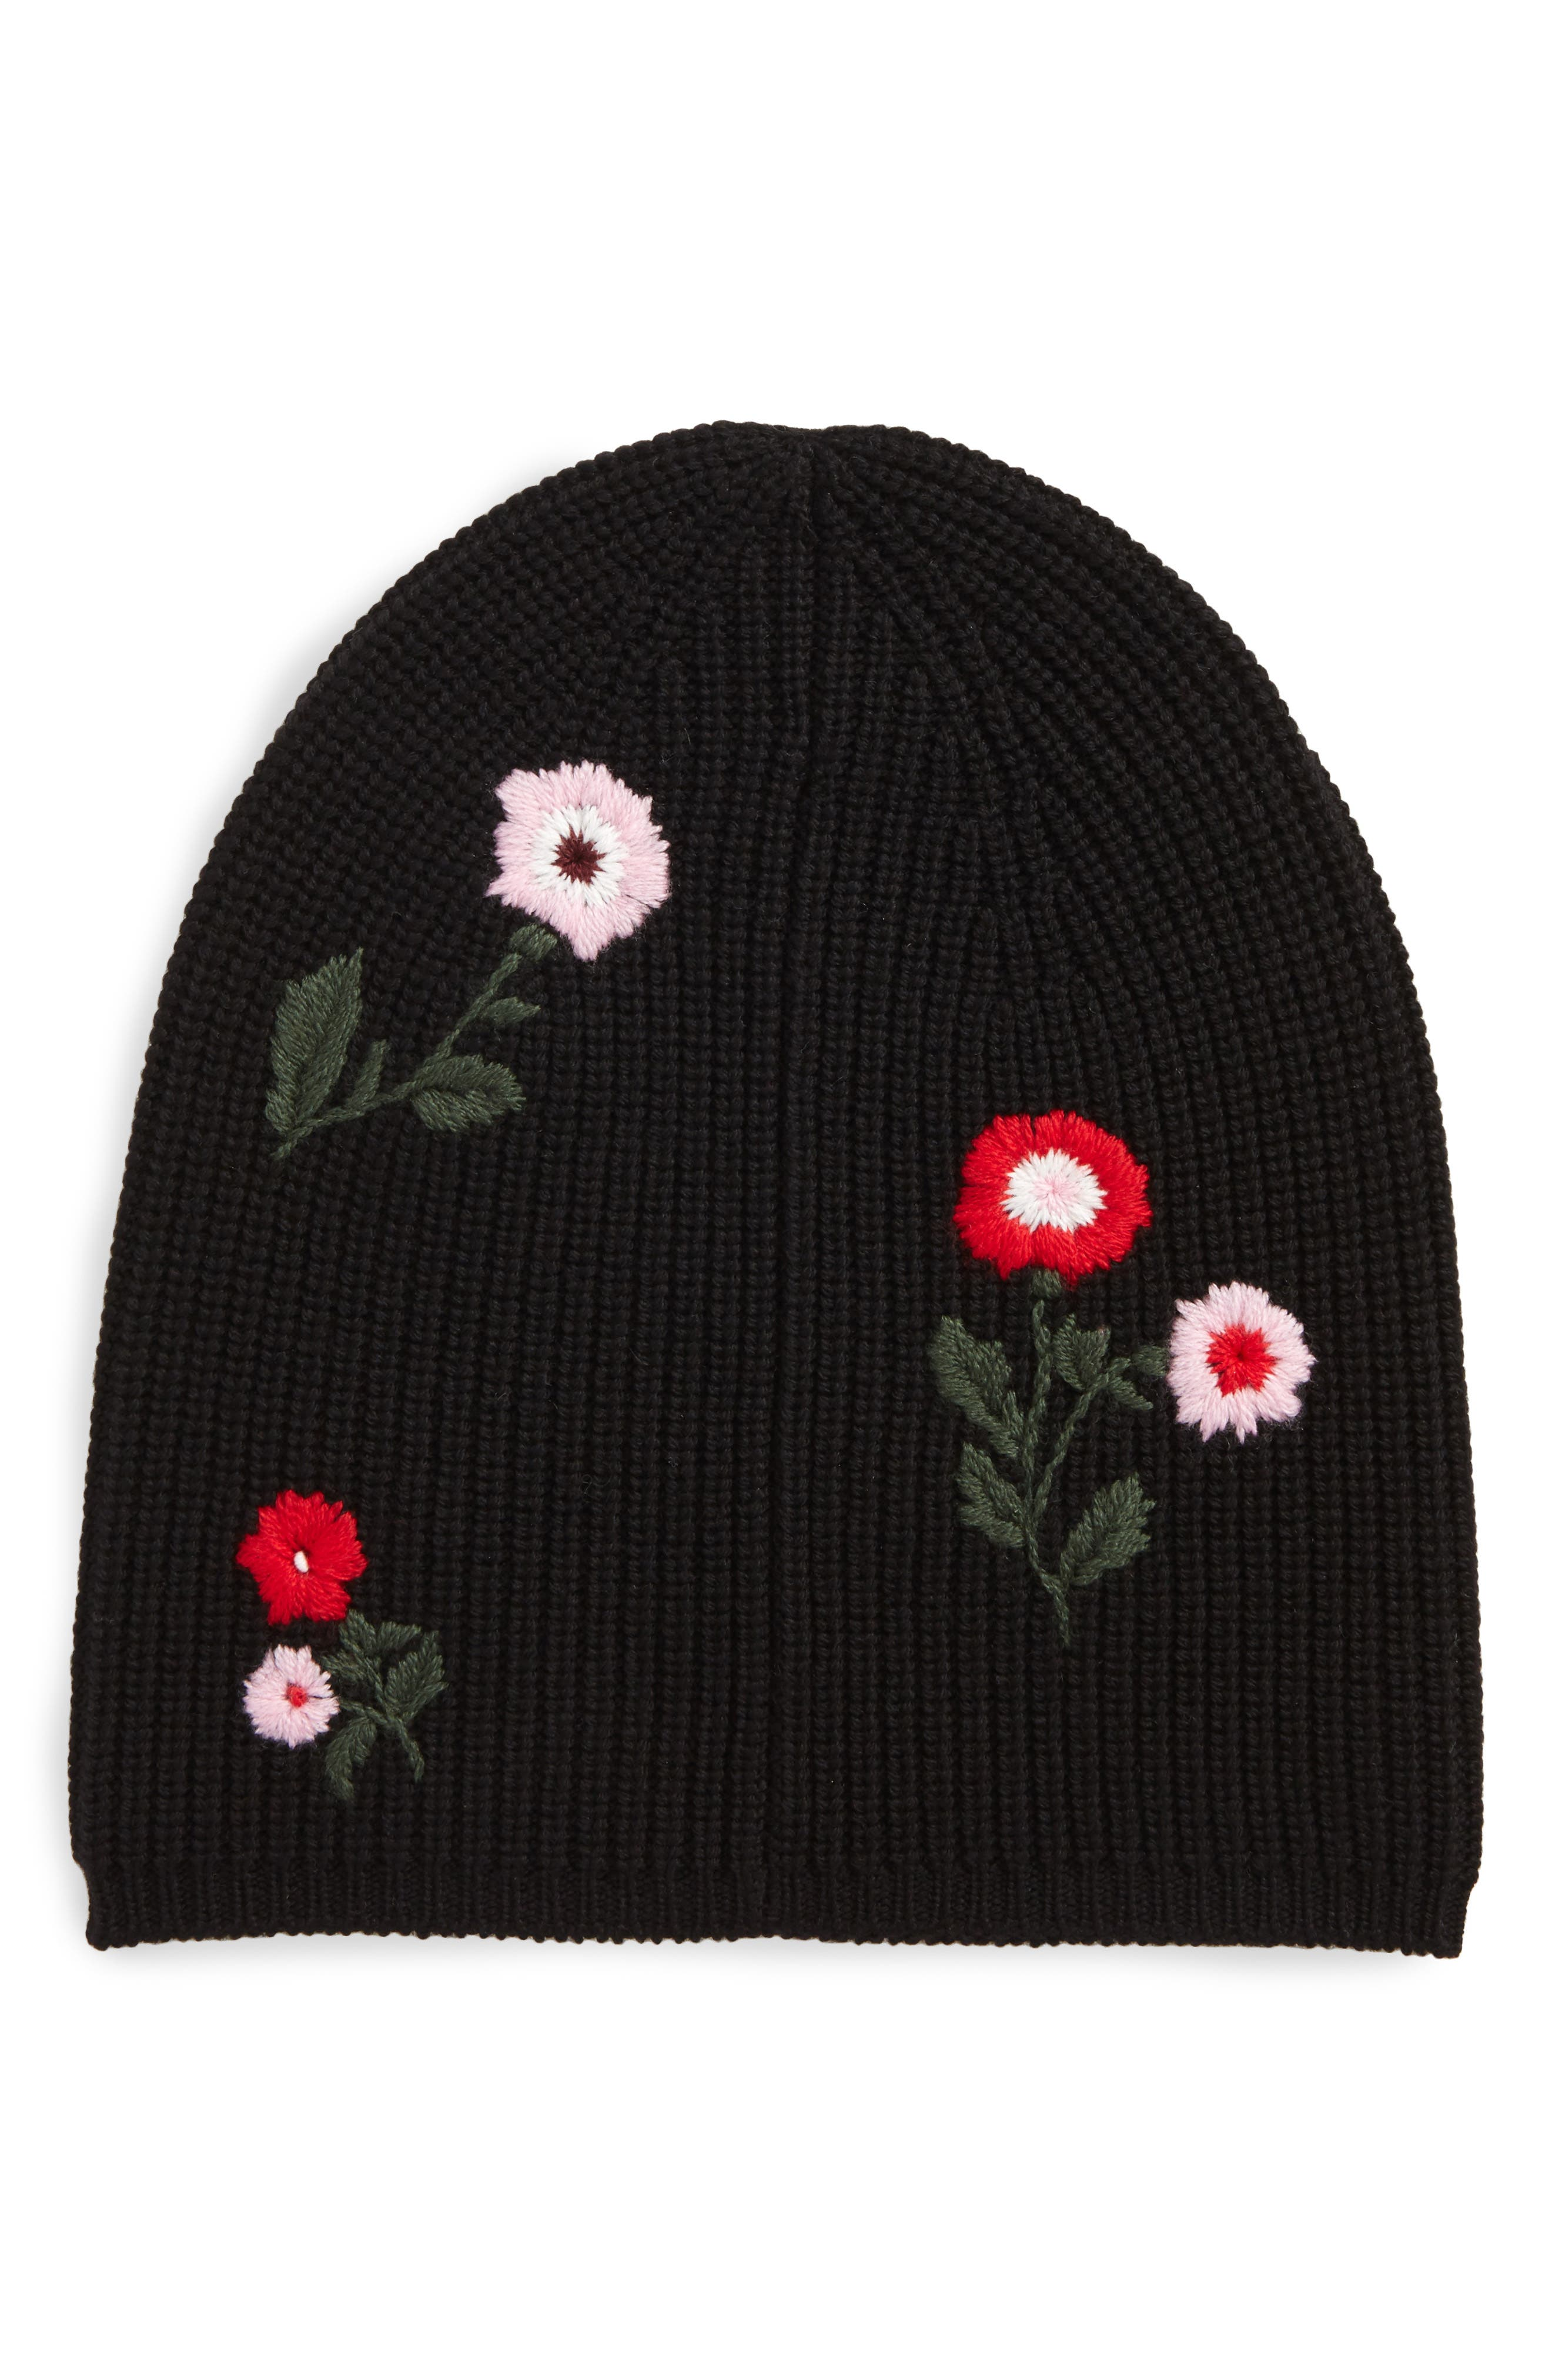 in bloom merino wool knit beanie,                             Main thumbnail 1, color,                             001